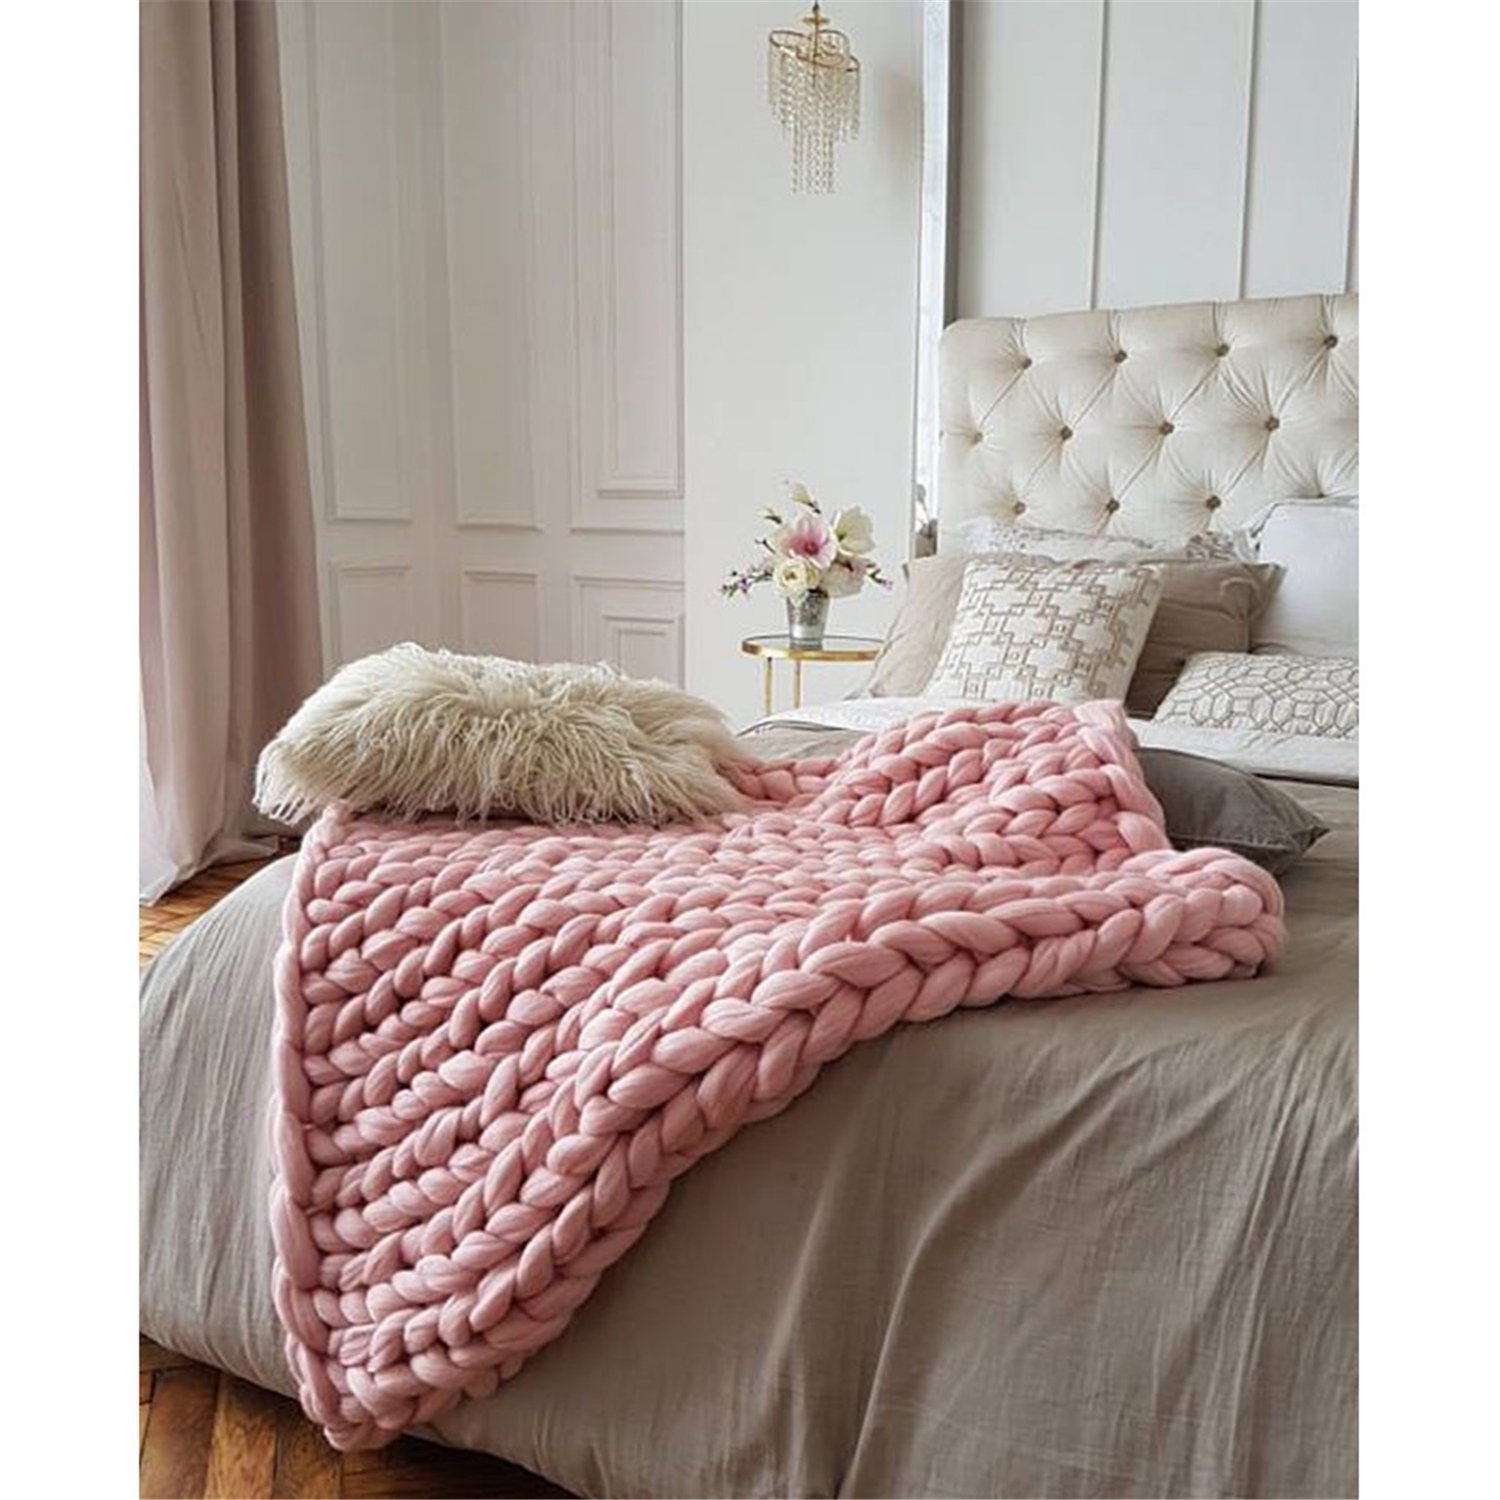 Chunky Giant Knit Thick Yarn Blanket Bulky Knit, Extreme knitting Knitted Pet Bed Chair Sofa Yoga Mat Rug (51 x 67 inches (130 cm x 170 cm), pink) by HomeModa